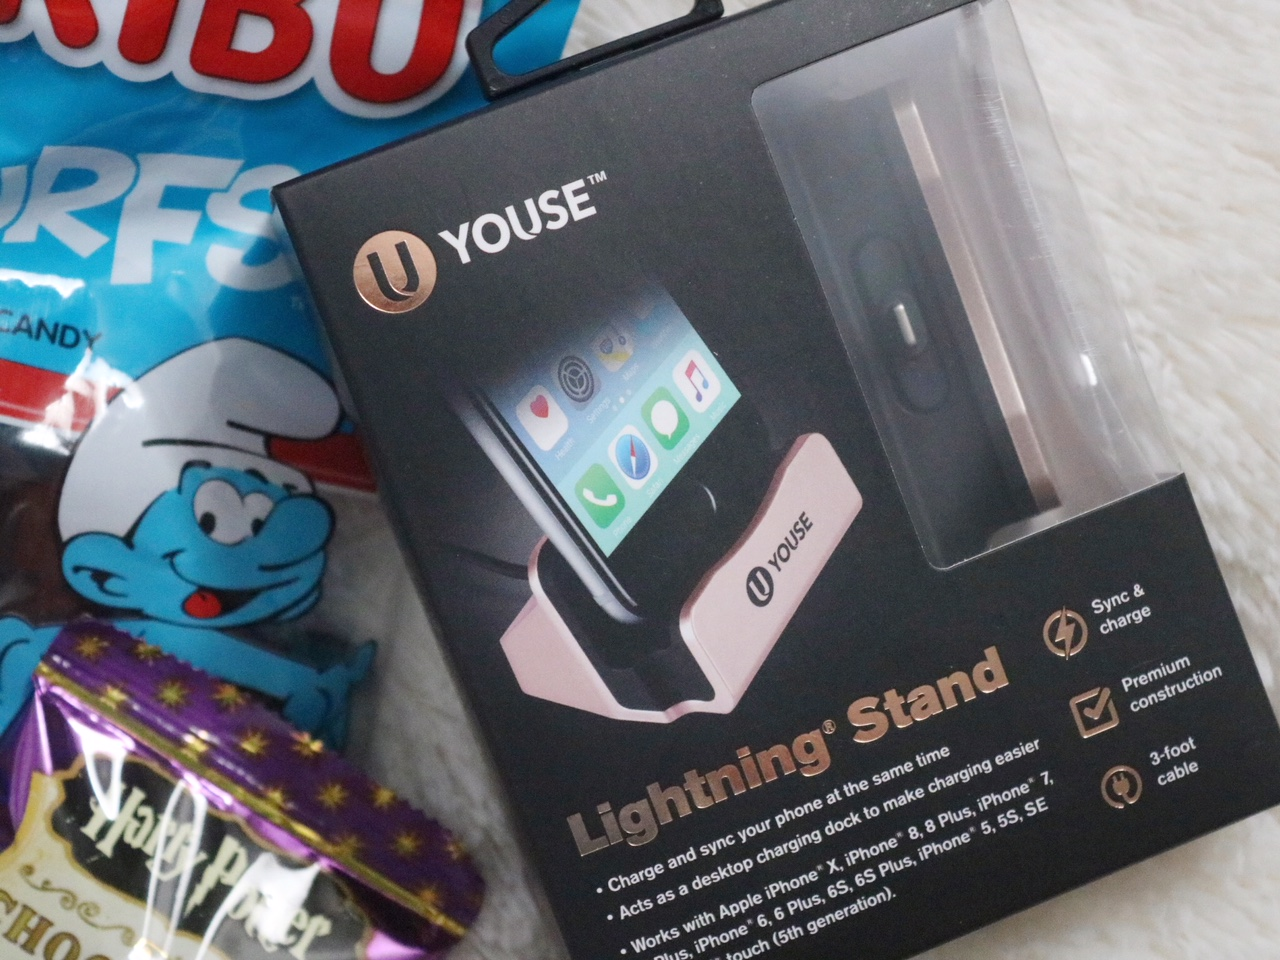 Five Below youse charger